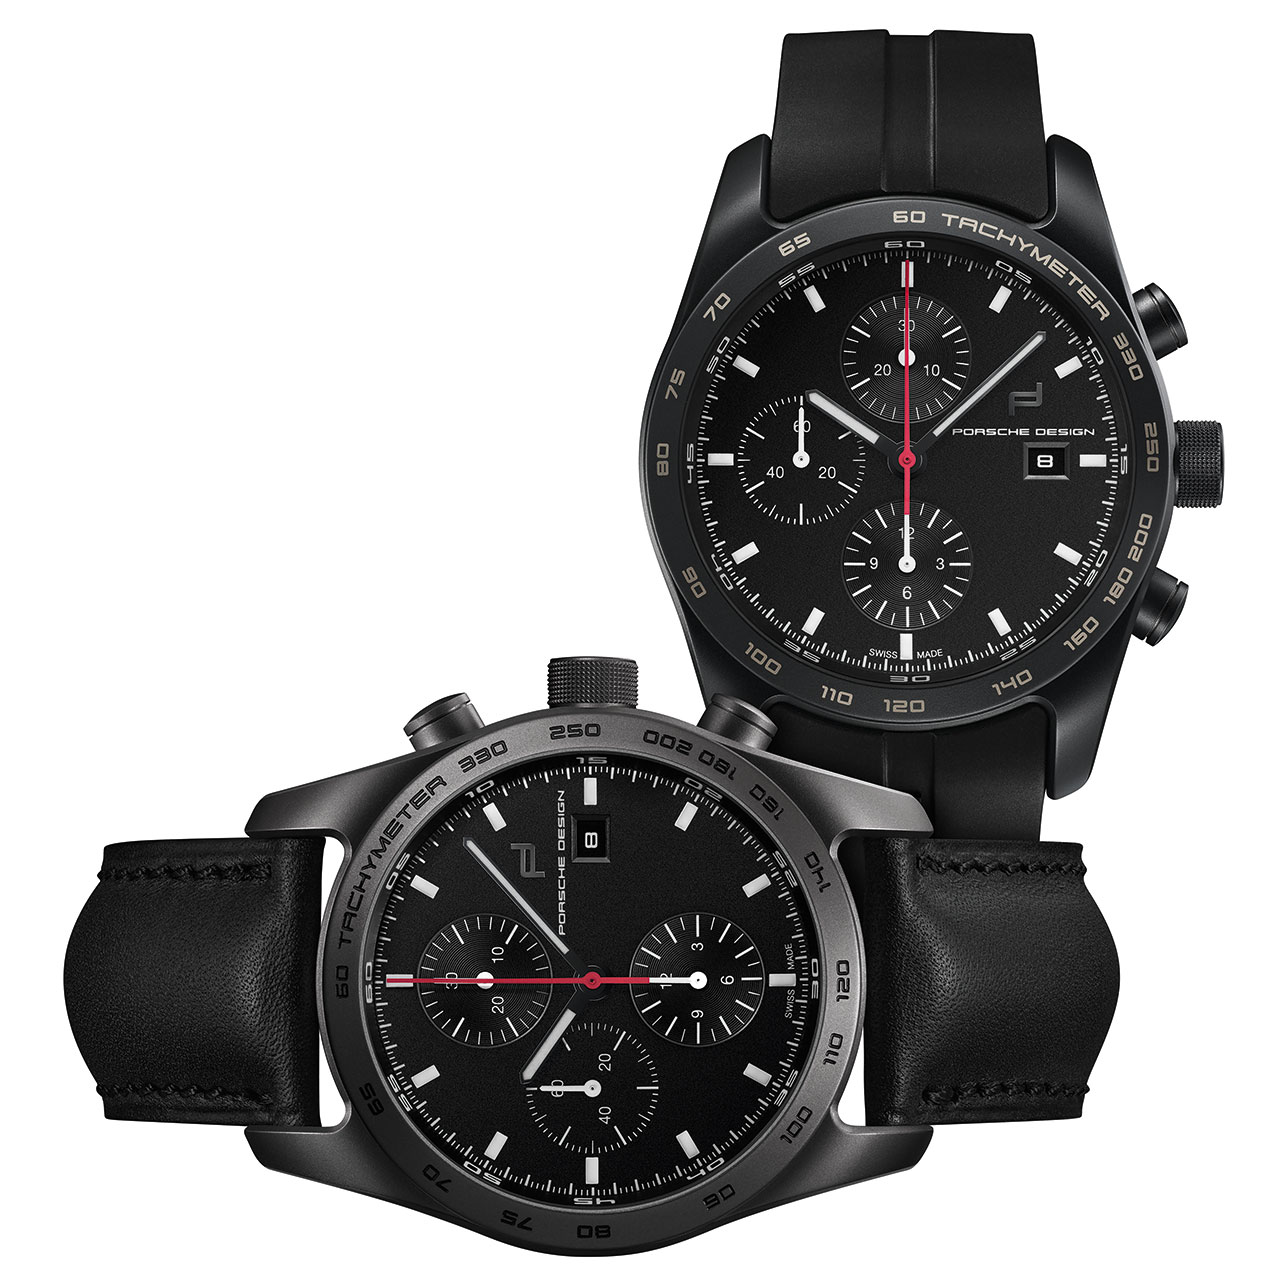 Porsche Design Timepiece No. 1 and Chronograph Titanium Limited Edition